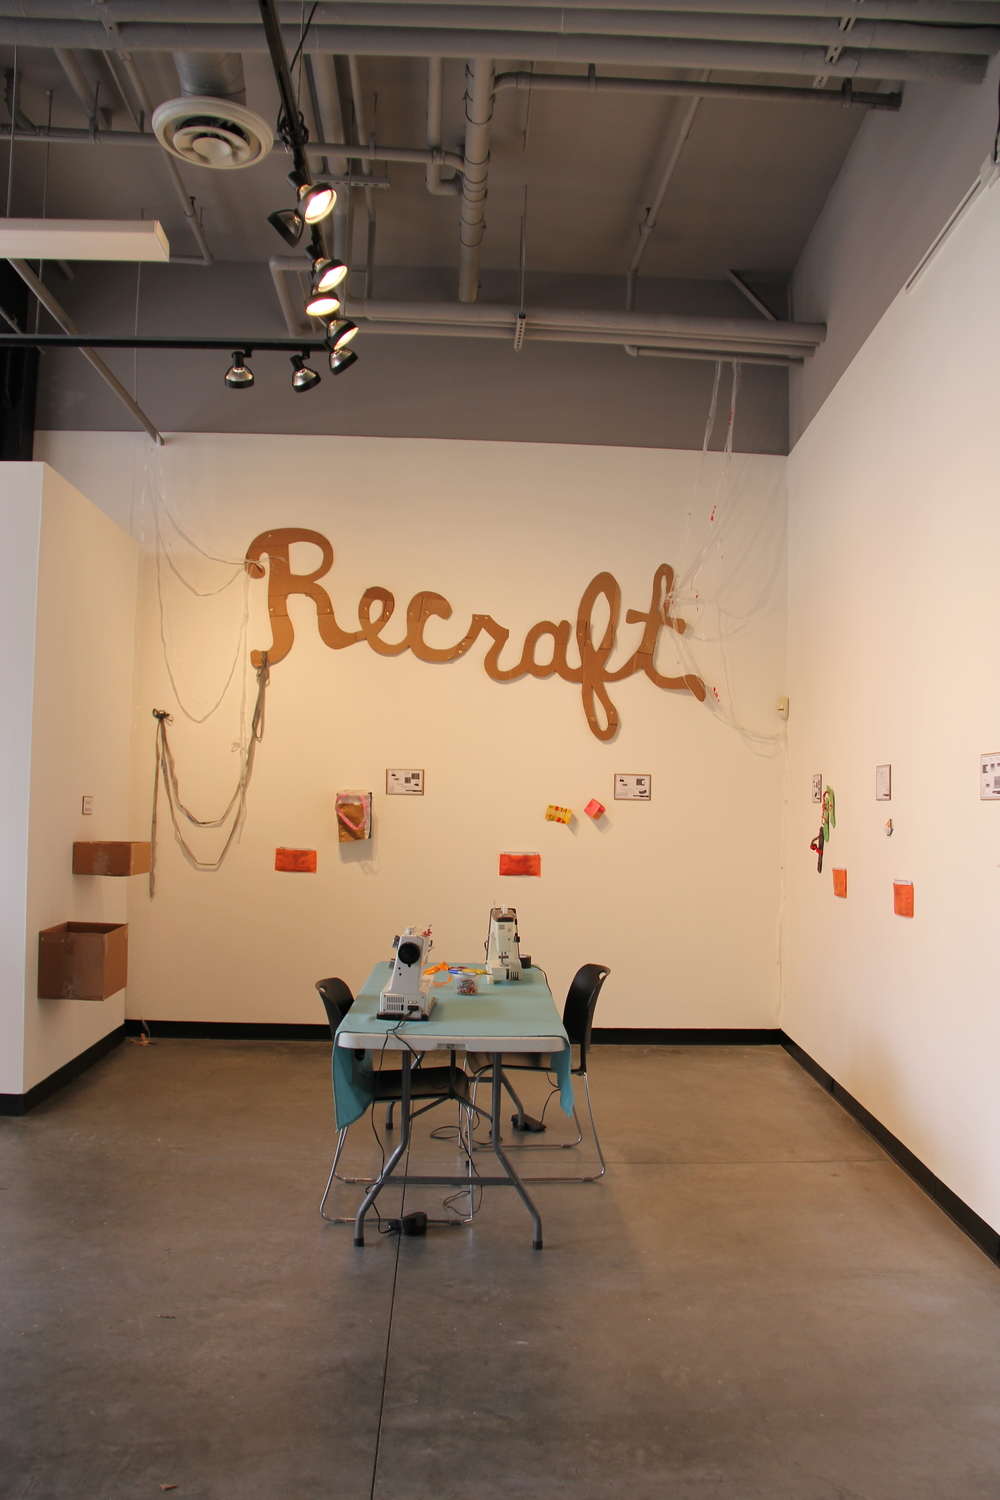 Recraft Workshop Space